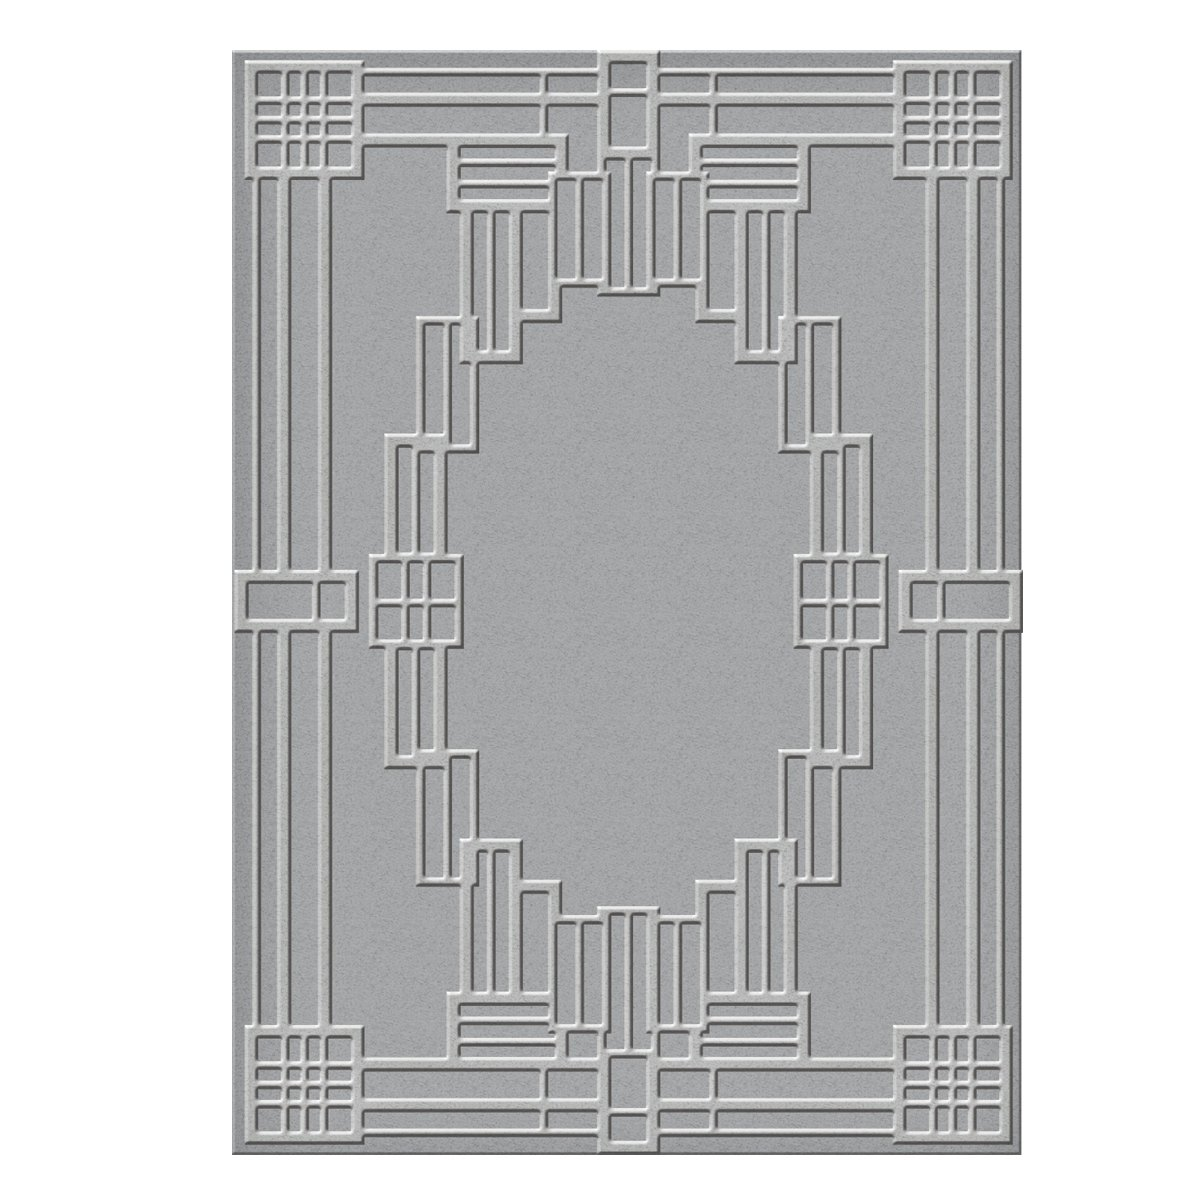 Spellbinders S6-071 Deco Squared Texture Plate